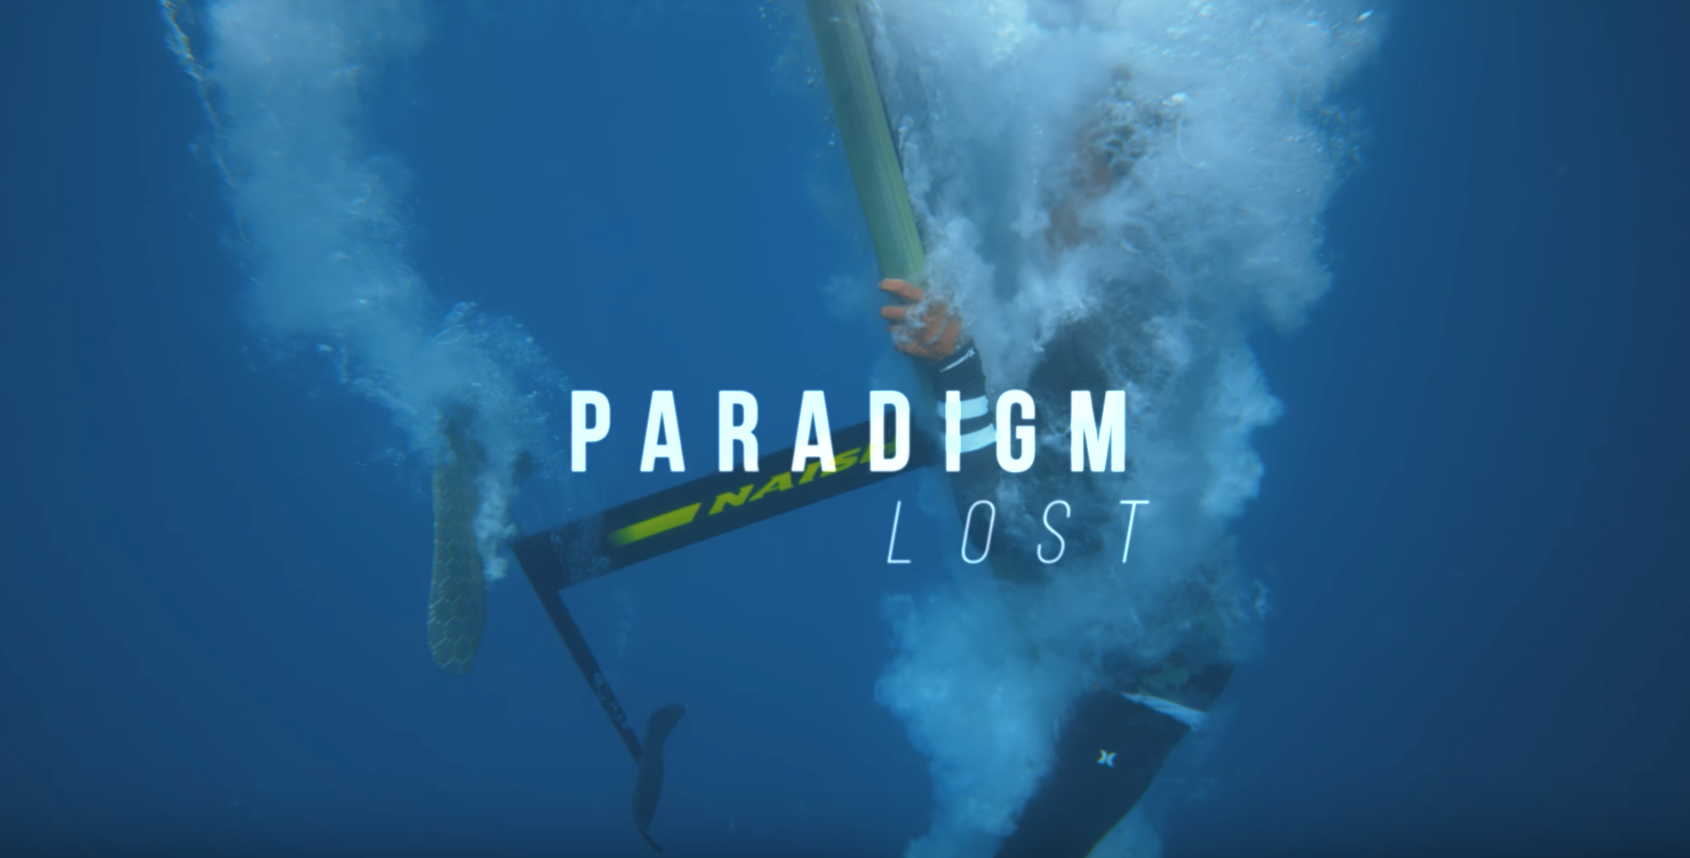 Paradigm Lost - A Surf Film by Kai Lenny   Official 4K Trailer